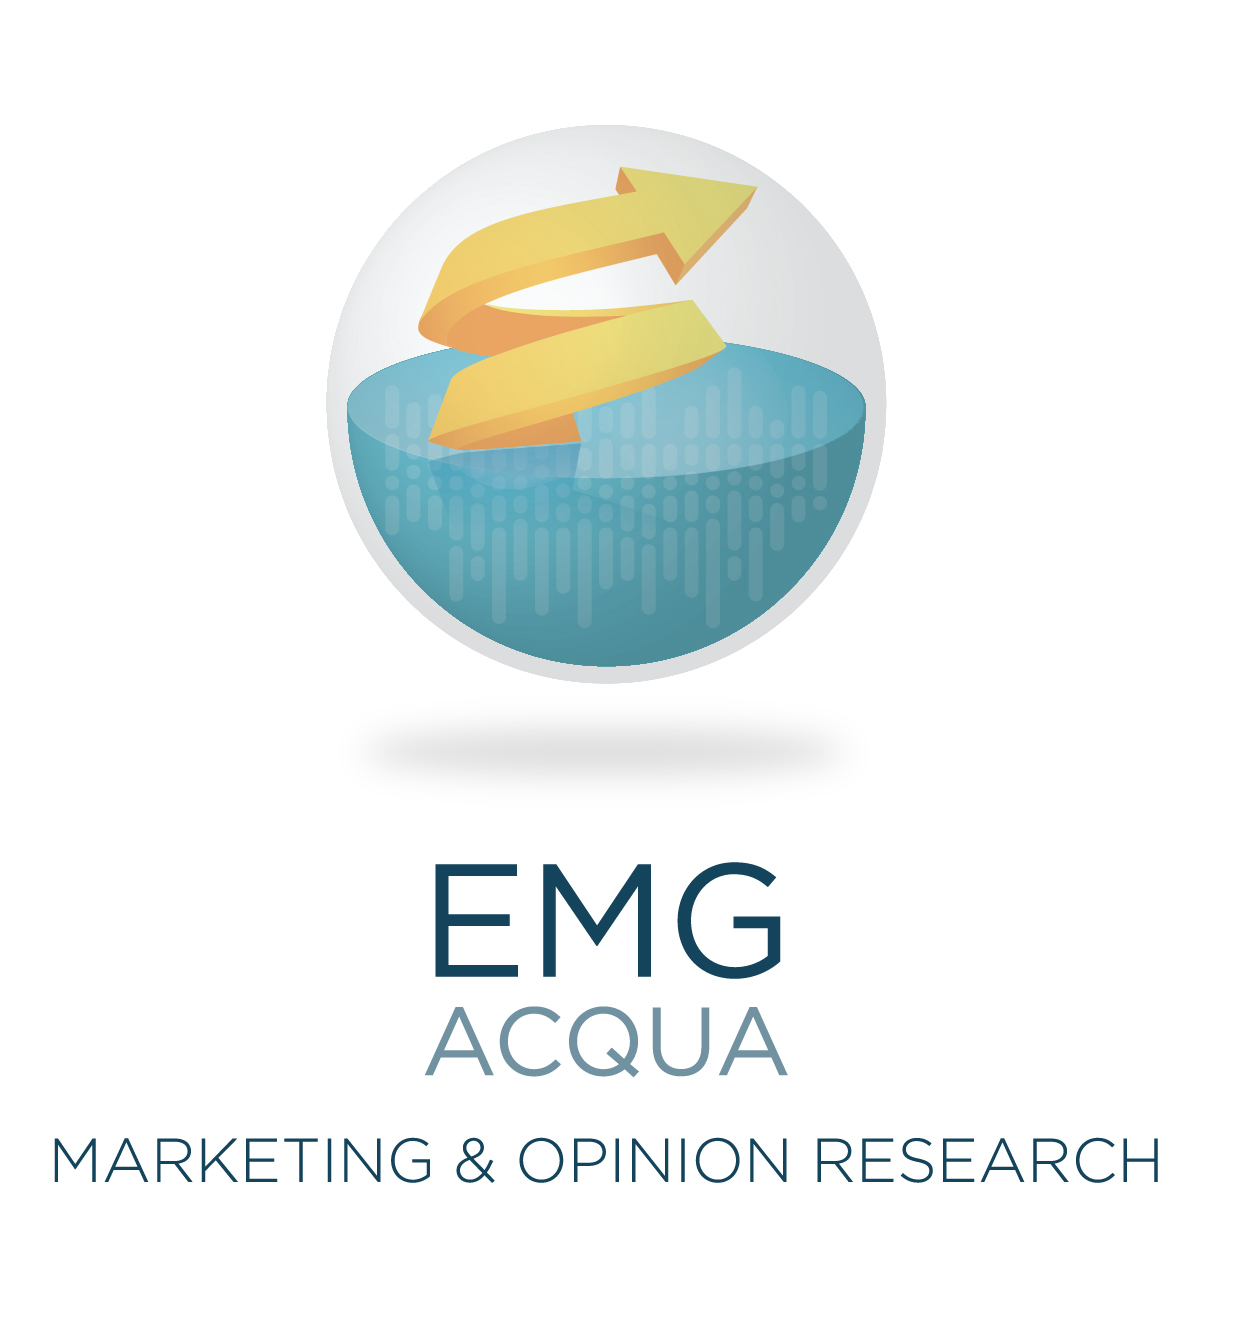 Acqua Group e EMG Marketing & Opinion Research danno vita a EMG Acqua